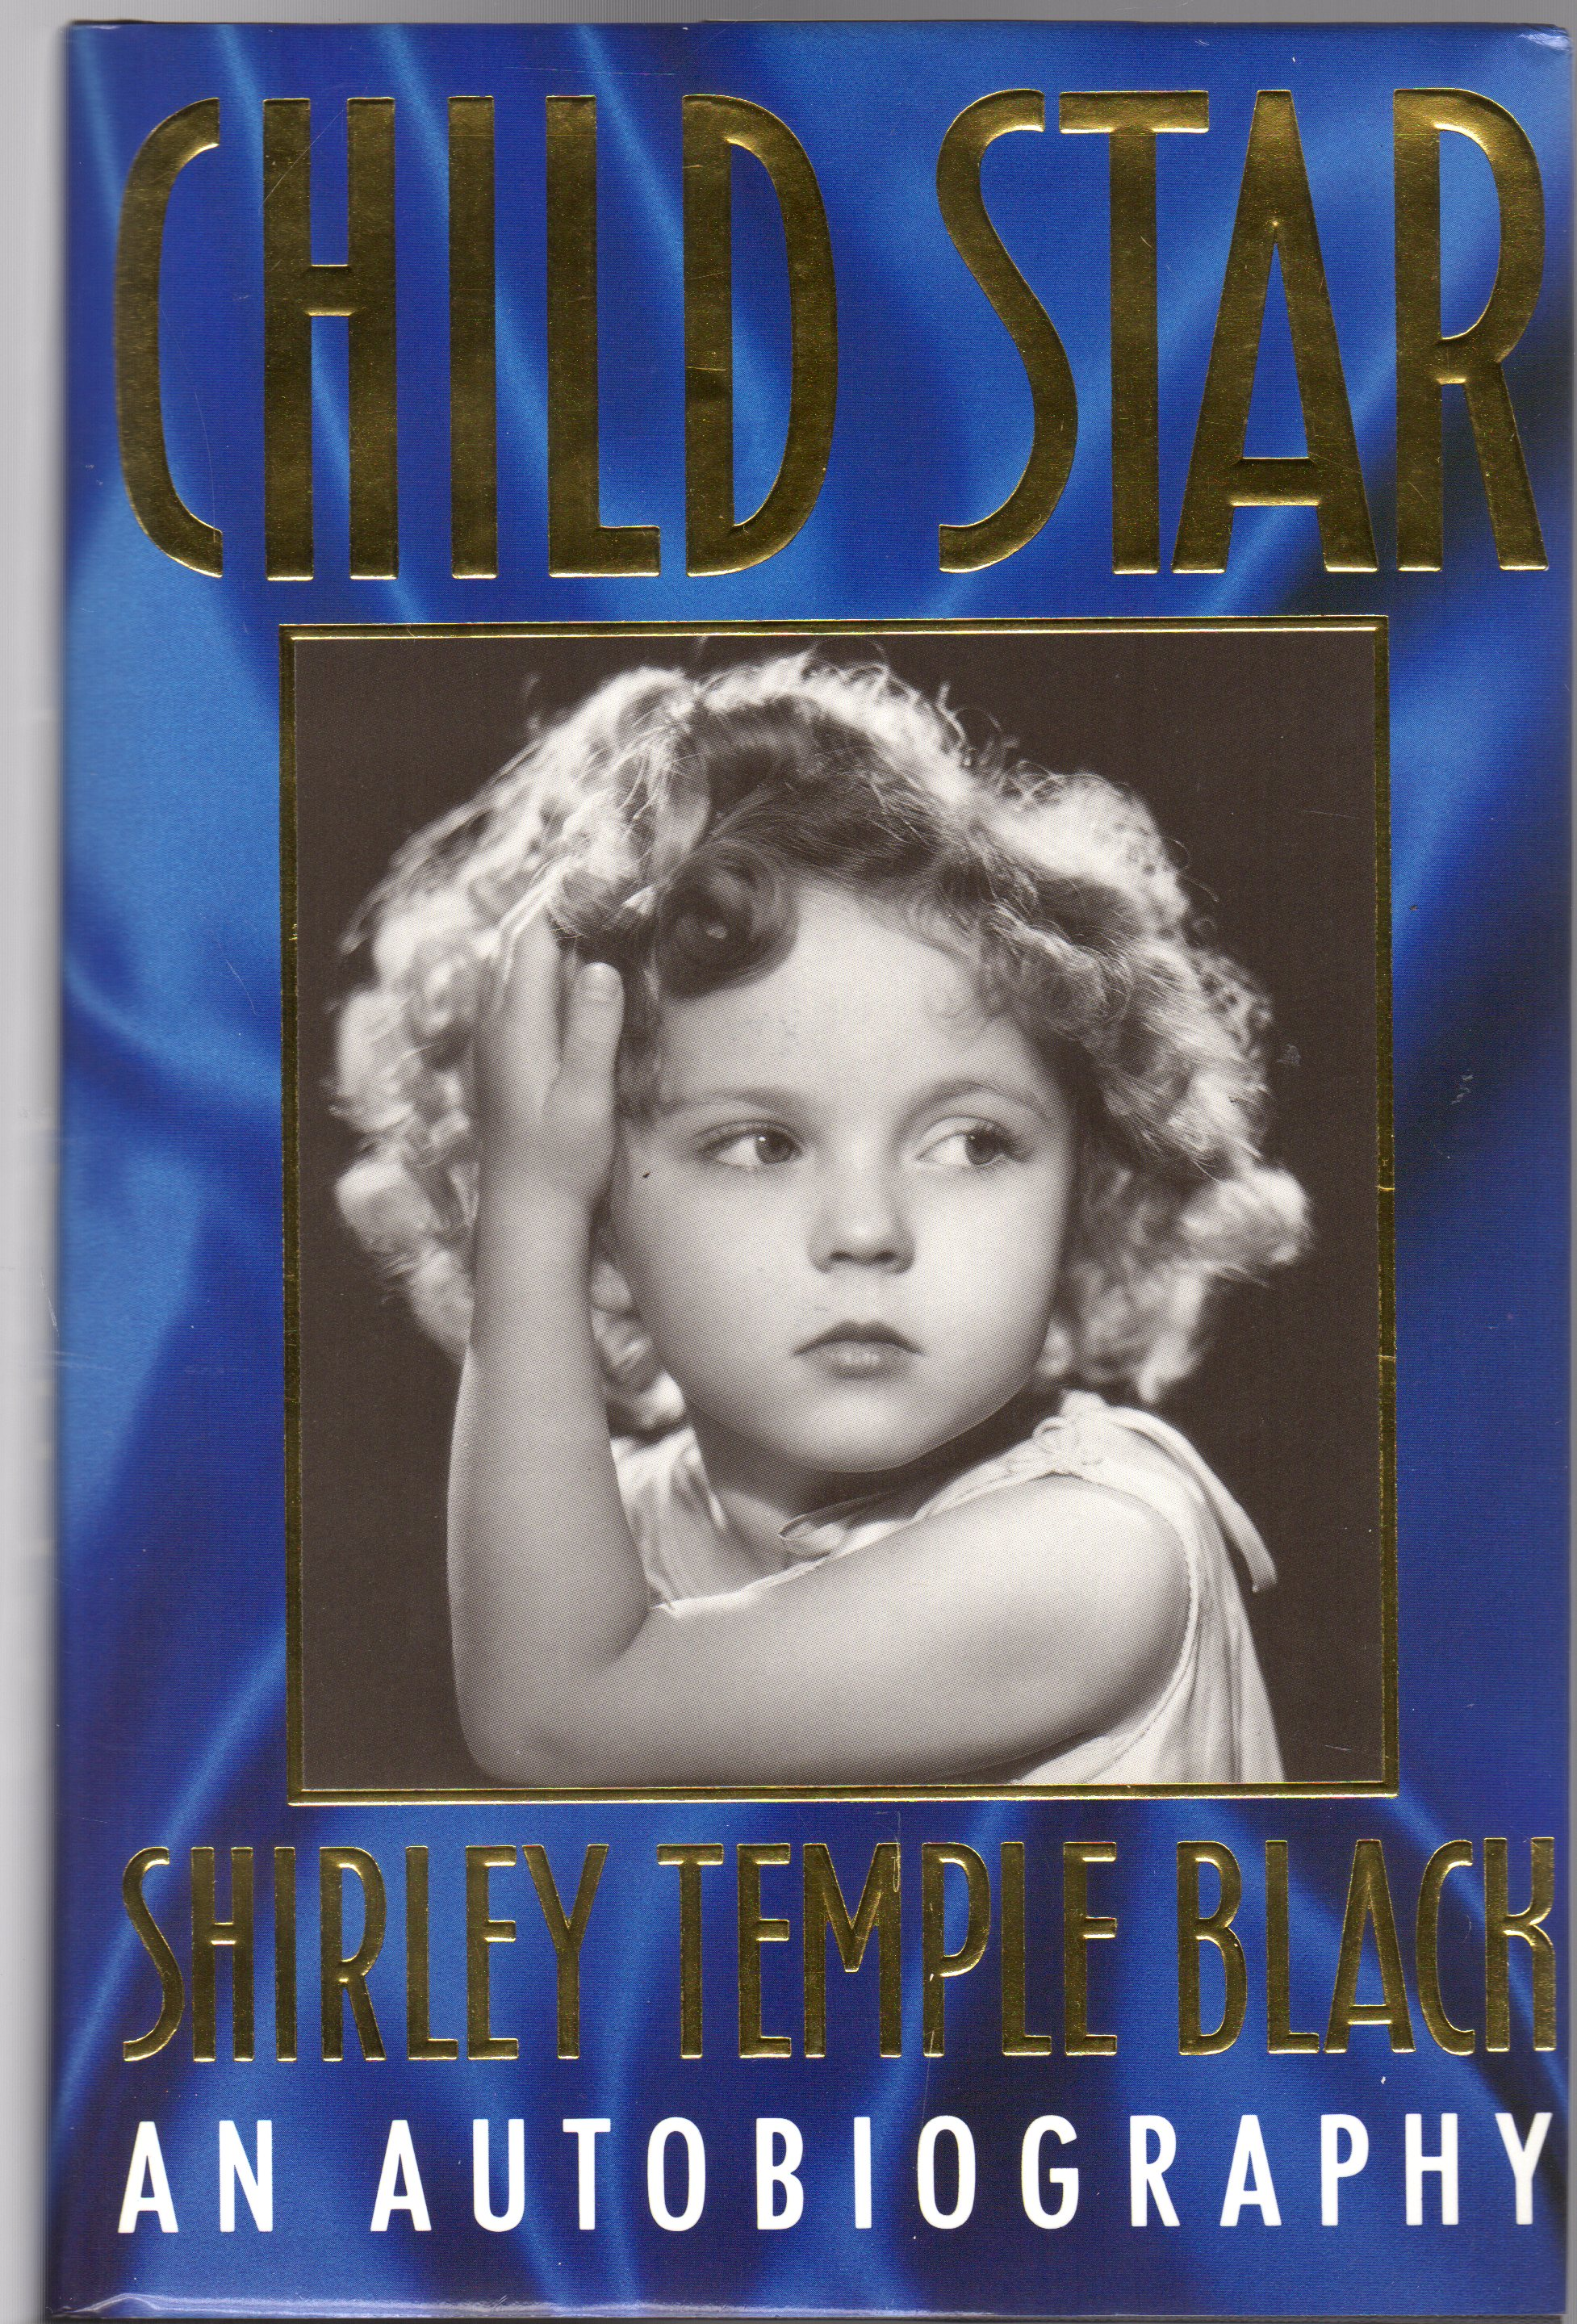 Image for Child Star: An Autobiography